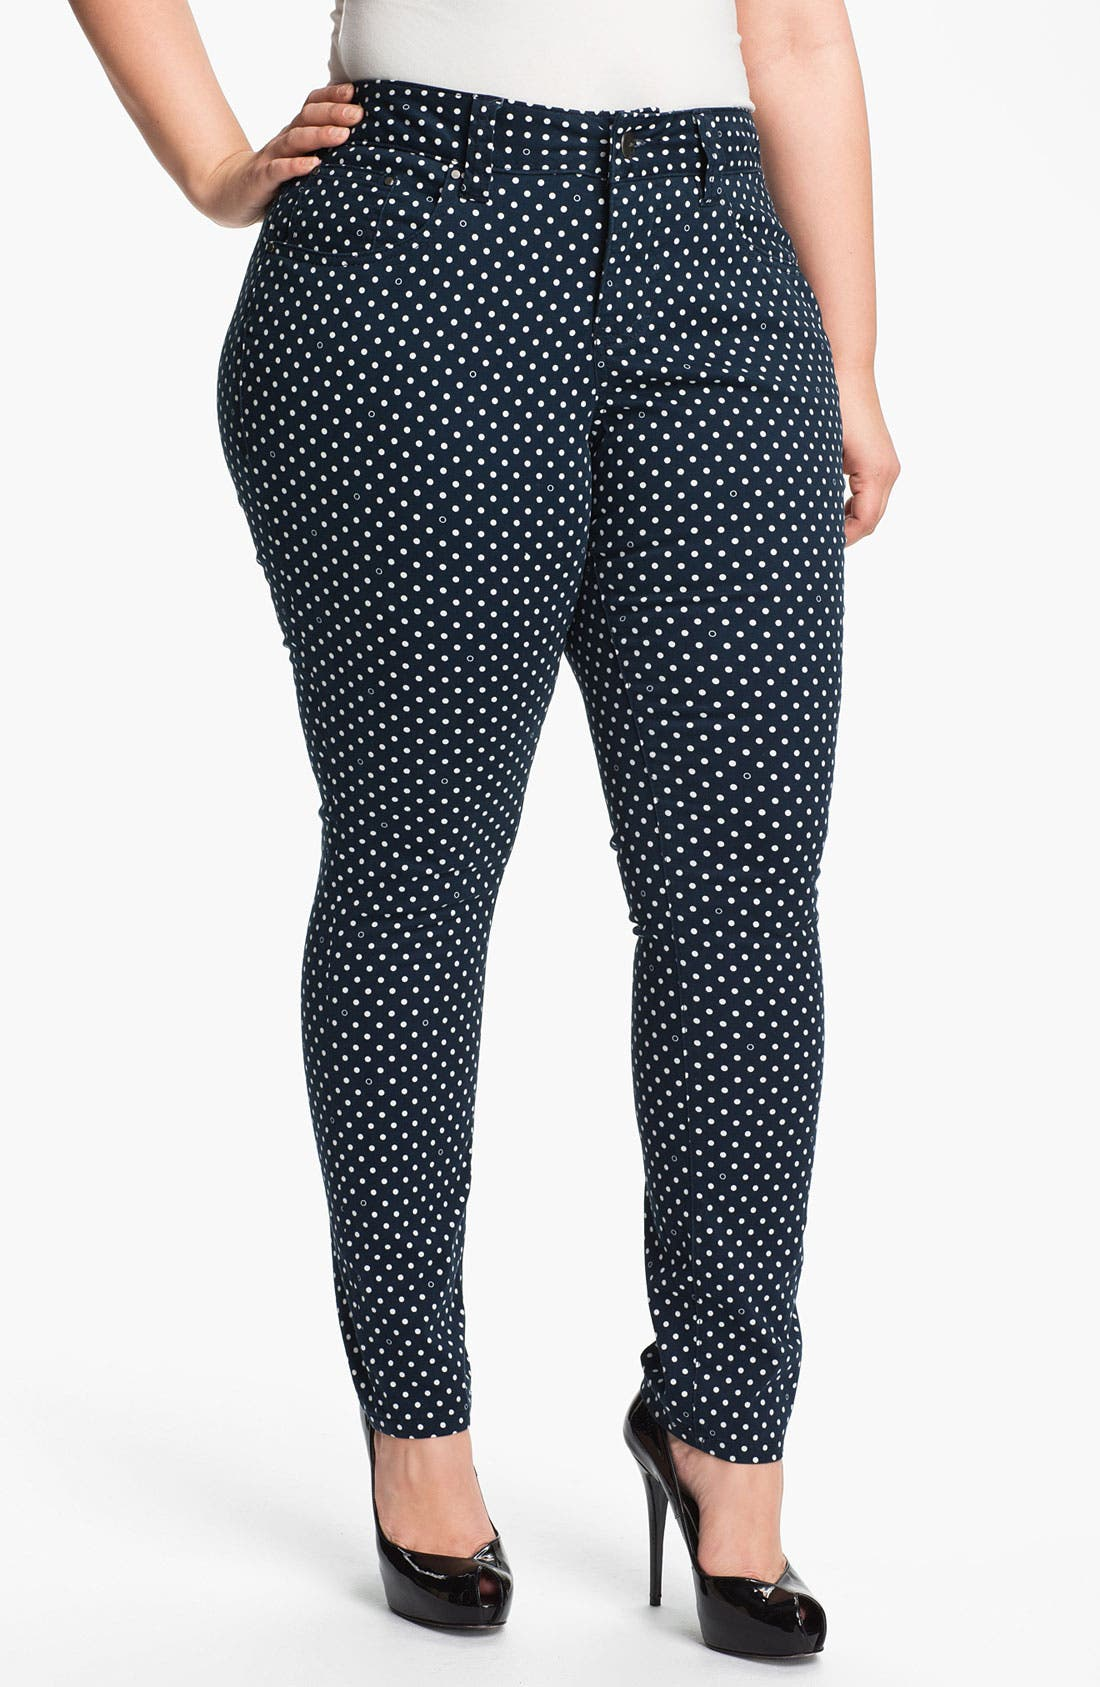 Main Image - Jag Jeans Polka Dot Slim Ankle Jeans (Plus Size)